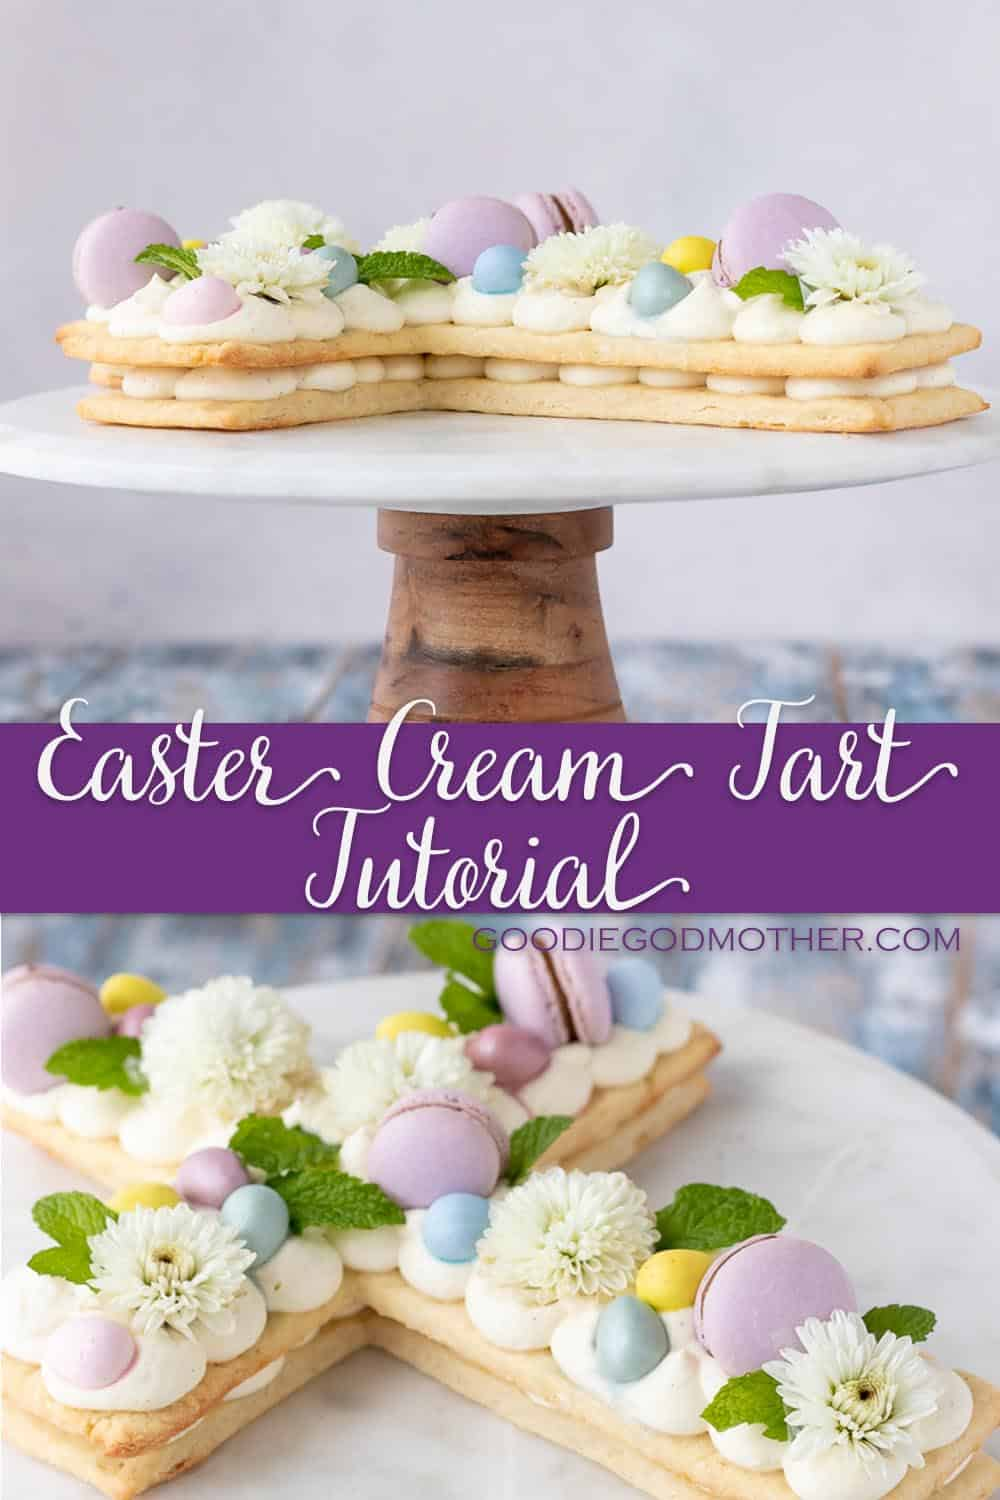 Make this beautiful Easter cream tart for your spring table! Post includes a video tutorial with assembly tips for beautiful results every time.  * Recipe on GoodieGodmother.com